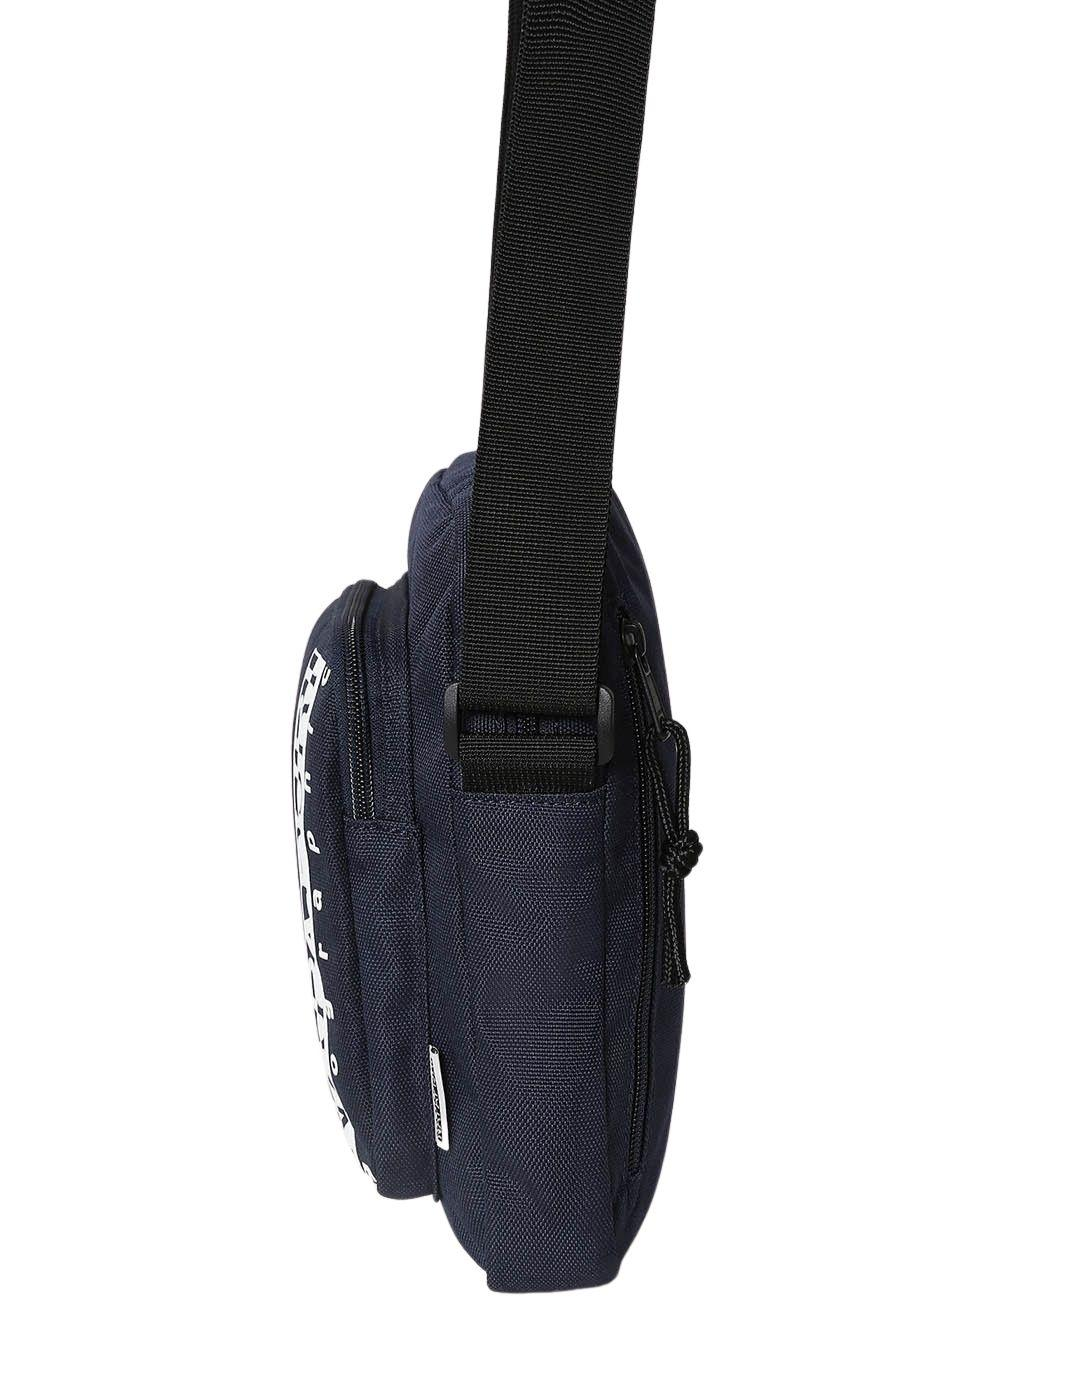 Bolso Napapijri Happy Cross Pkt 2 azul marino